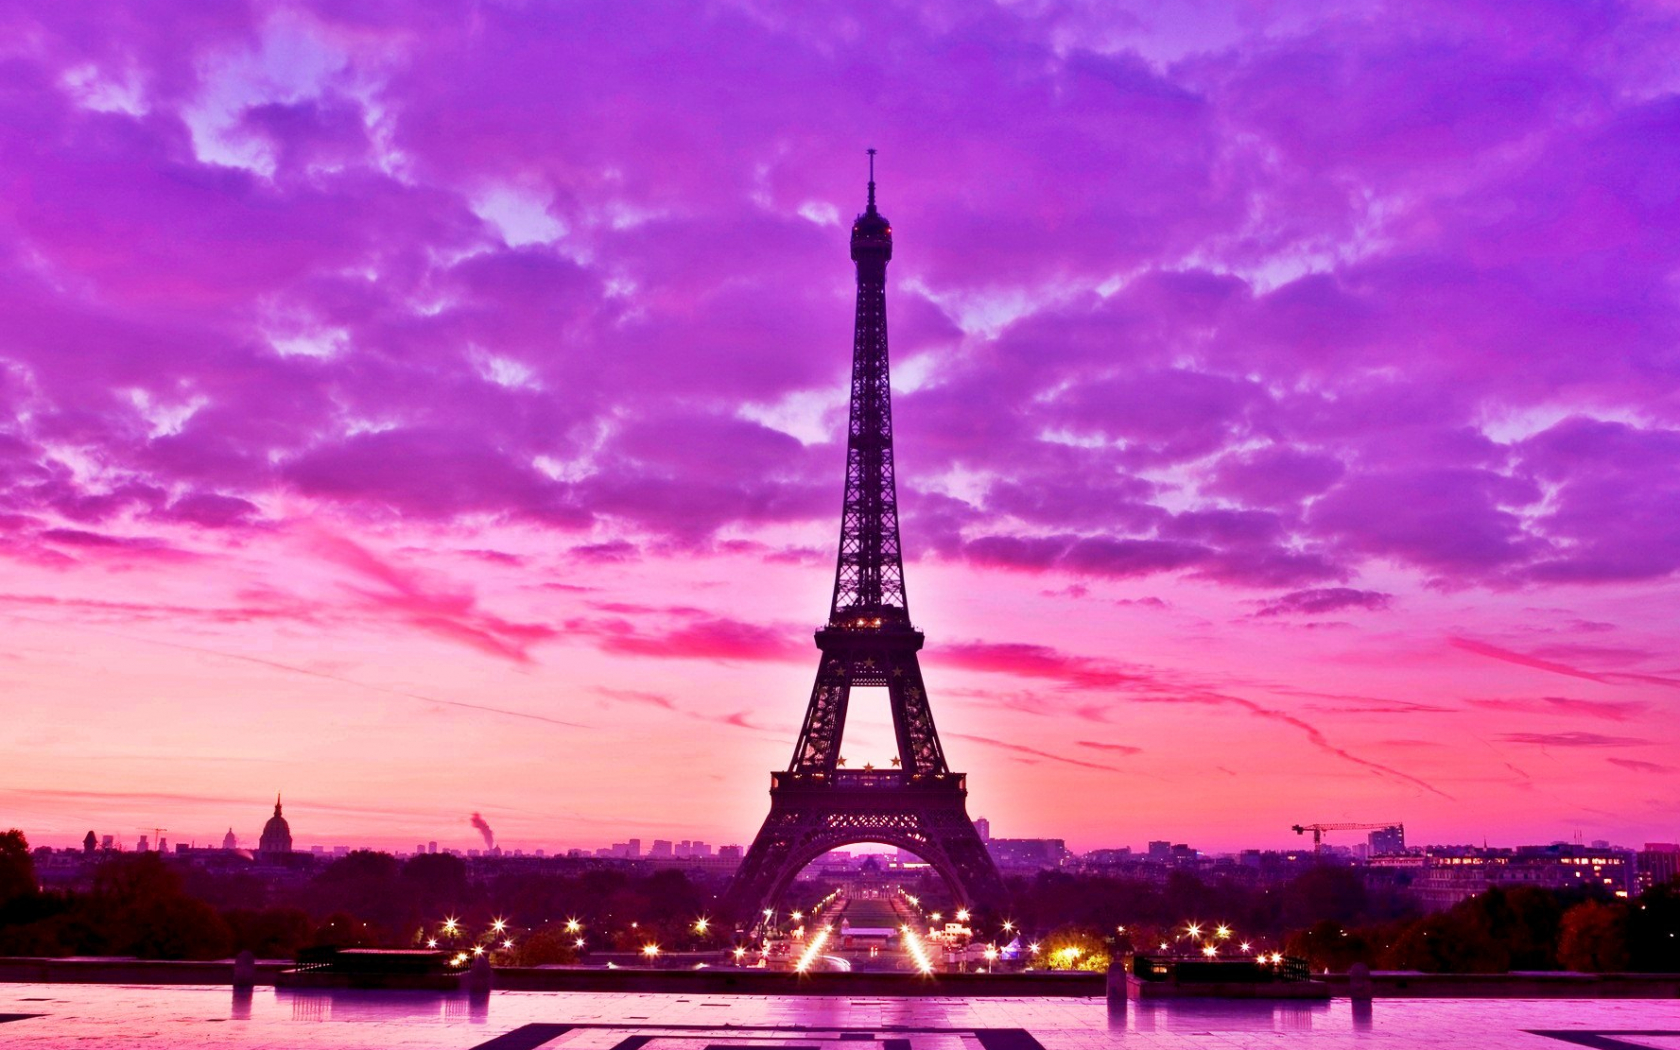 Free Download Eifeel Tower At Night Eiffel Tower France 1777x1333 For Your Desktop Mobile Tablet Explore 46 Cute Eiffel Tower Wallpapers Eiffel Tower Wallpaper Eiffel Tower Hd Wallpapers Cute Paris Wallpaper